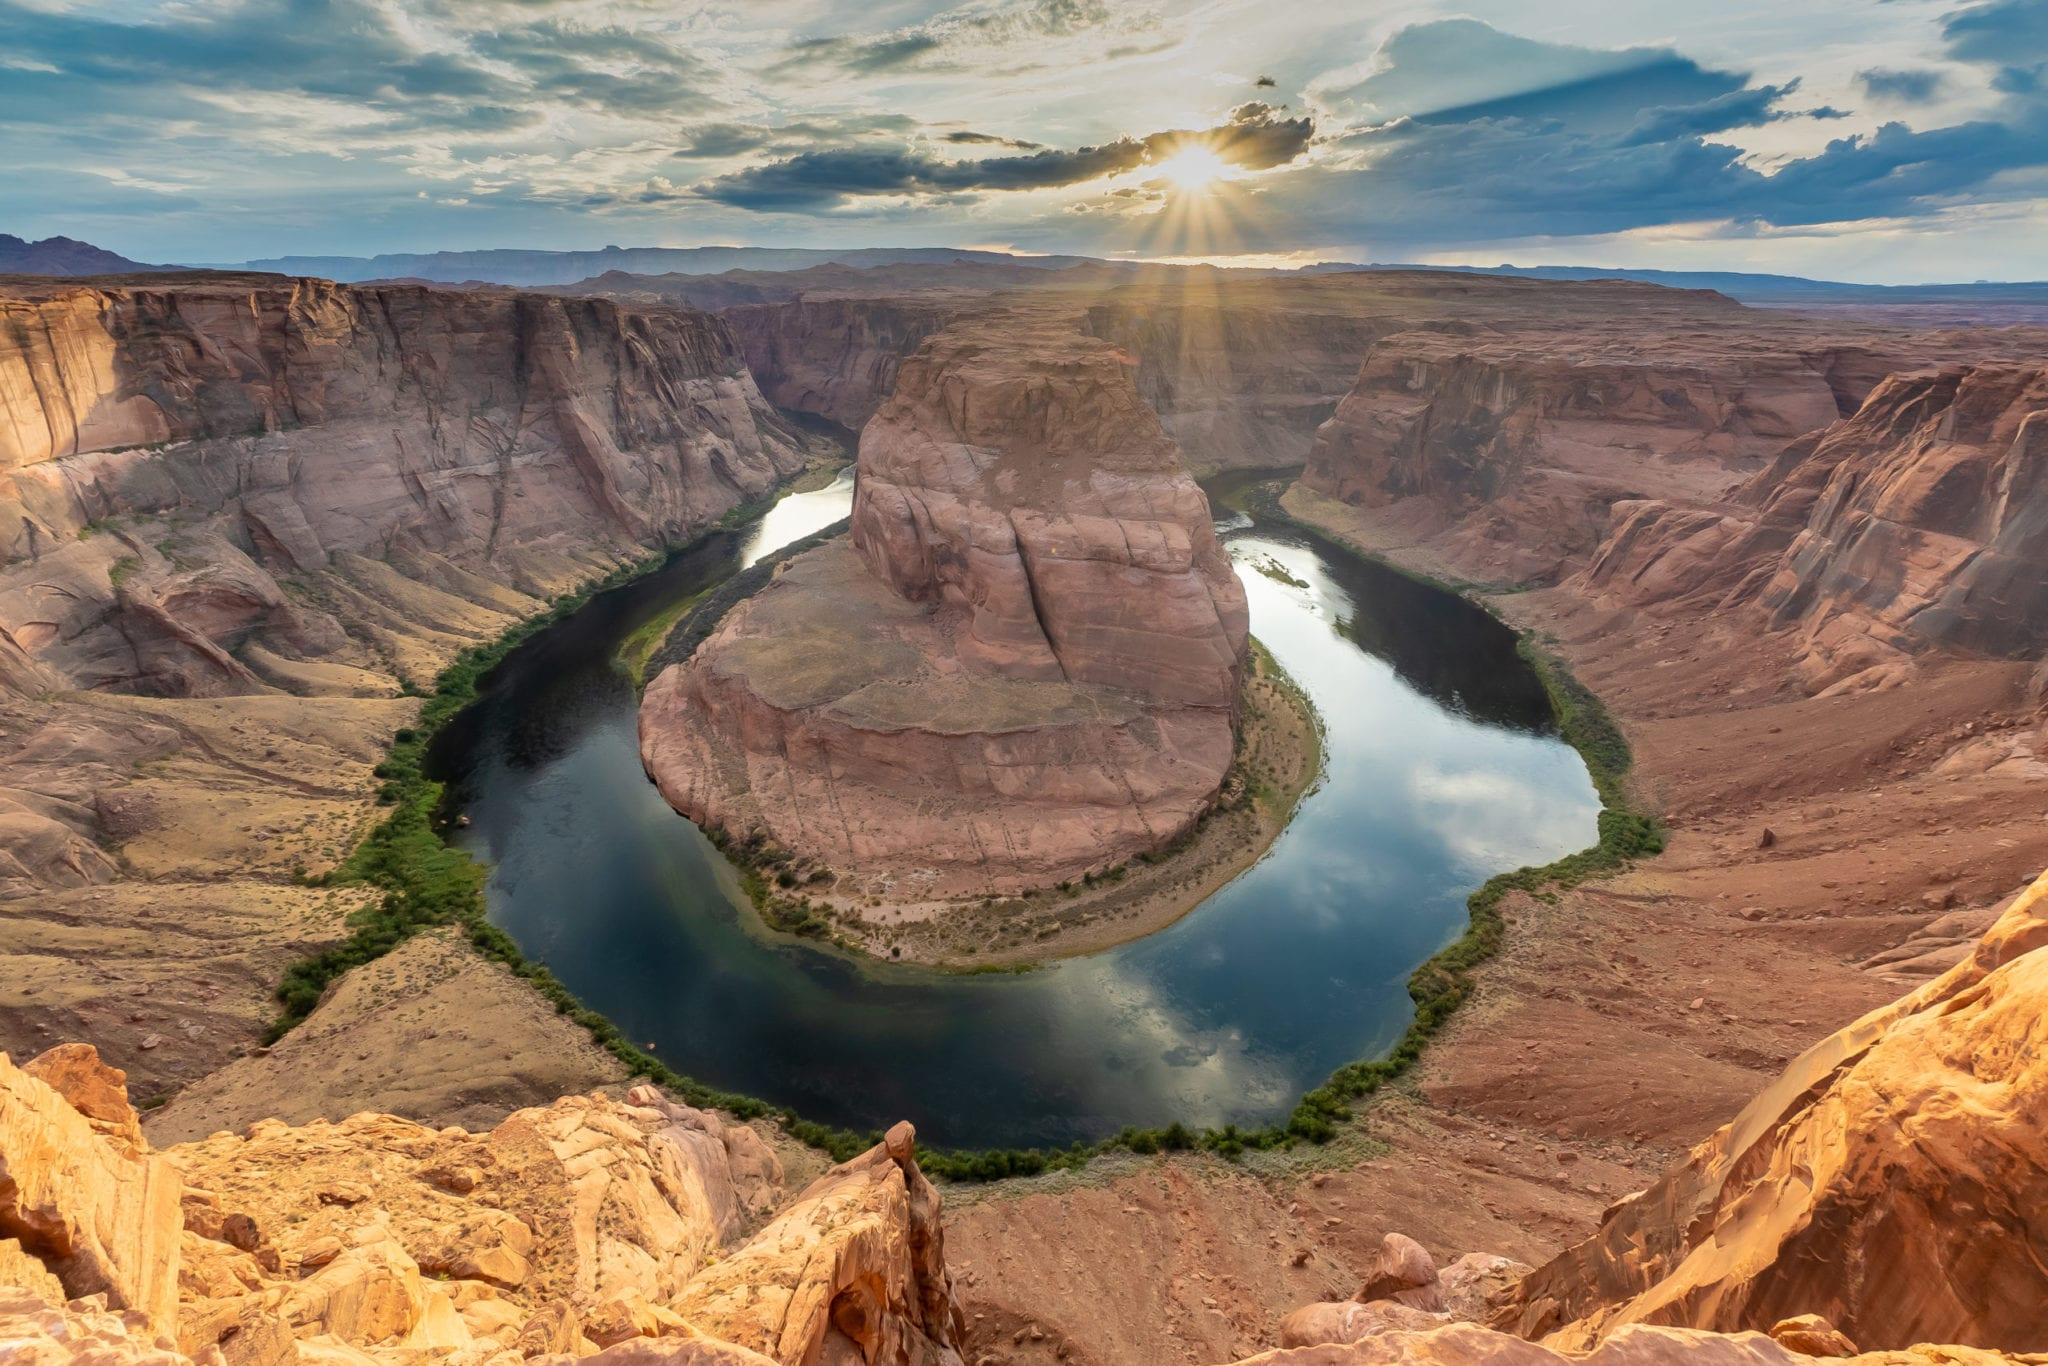 Exploring the Horseshoe Bend Hike in Glen Canyon at sunset